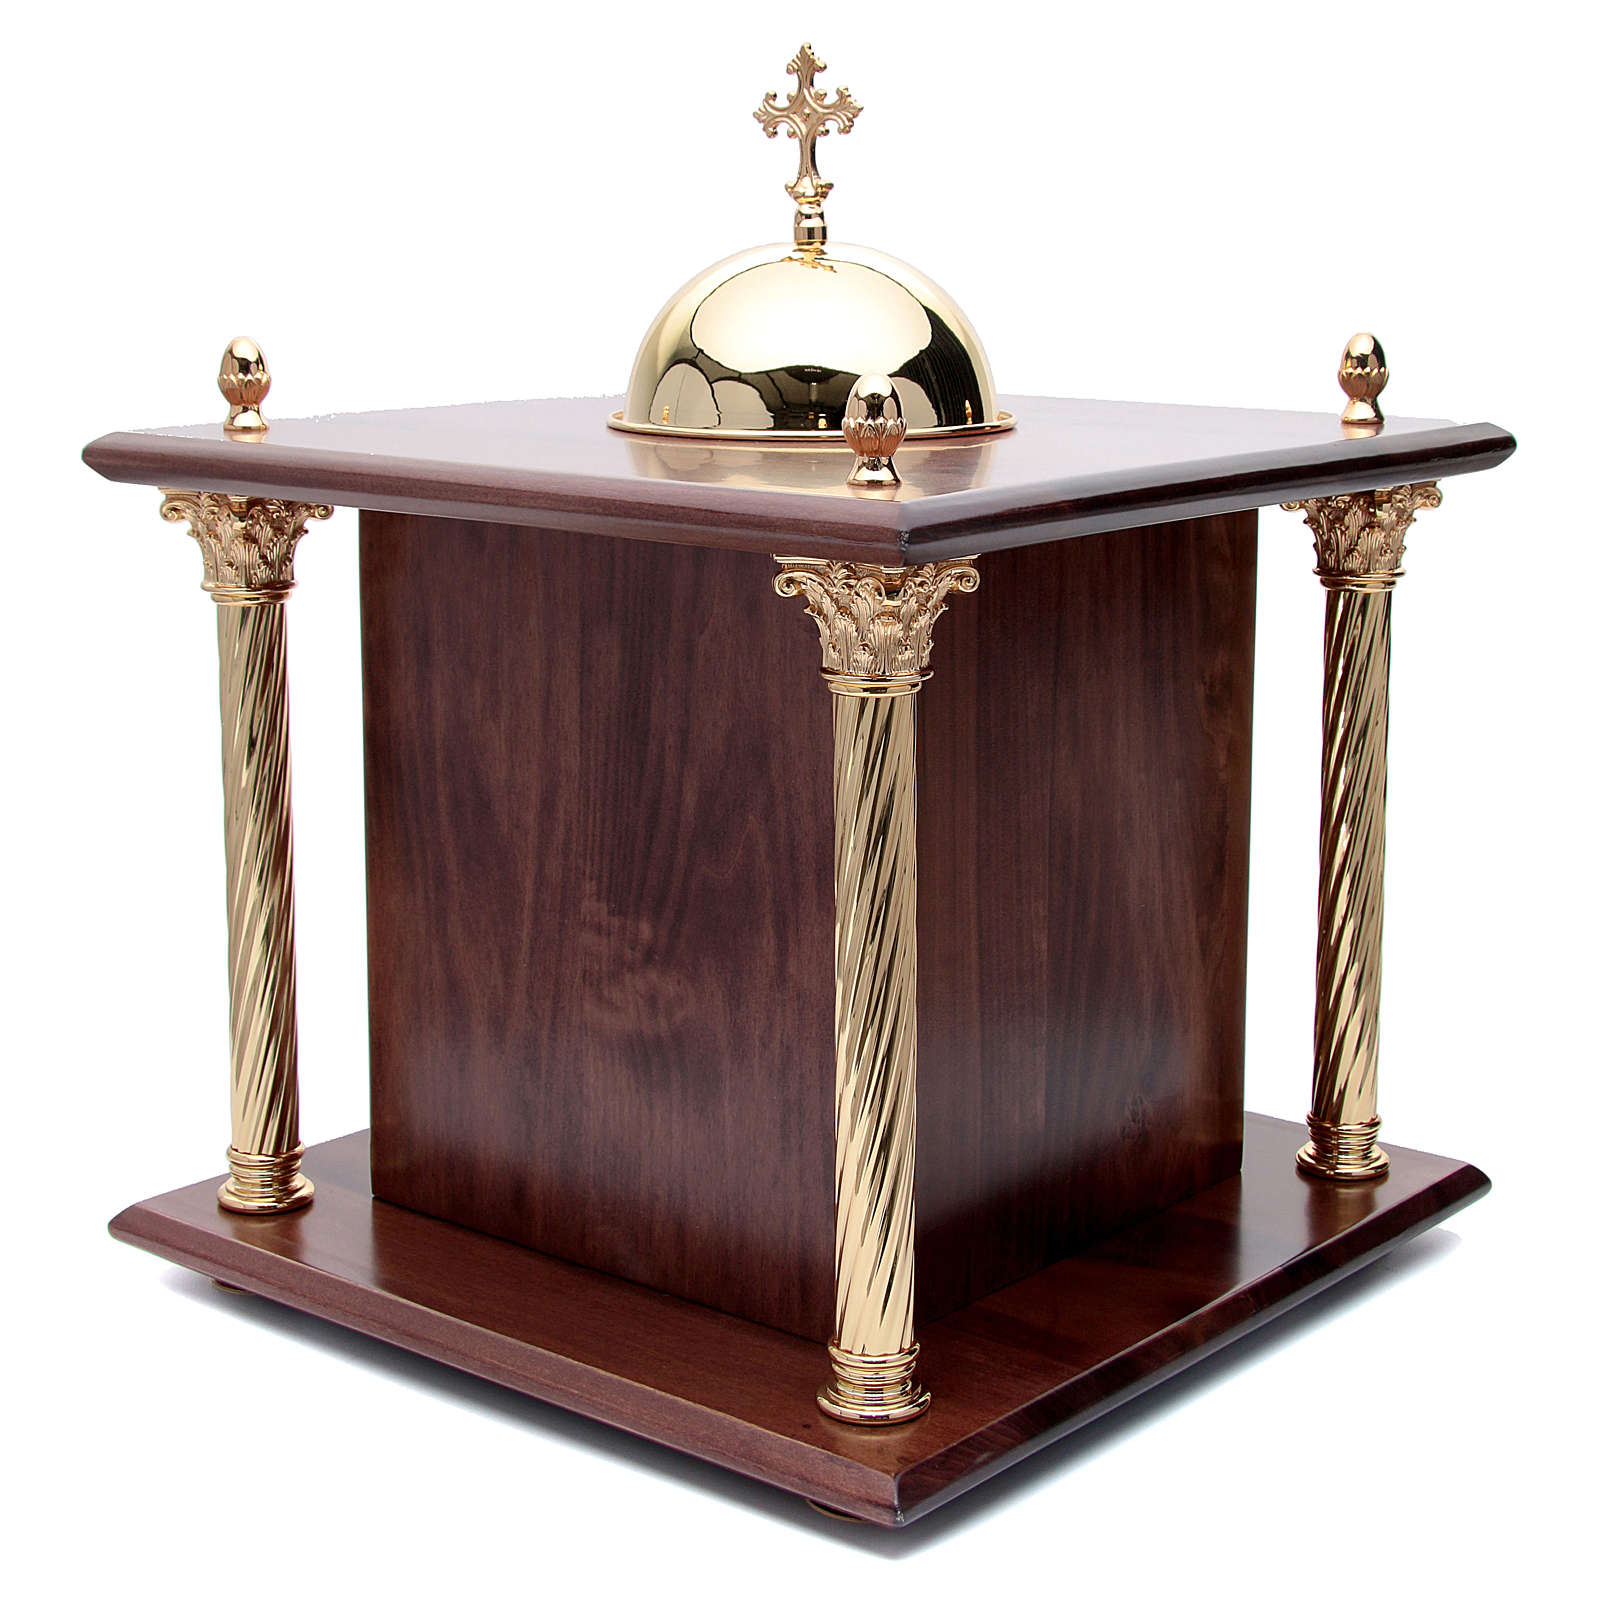 Altar Tabernacle in wood with brass window and columns, Dinner a 4